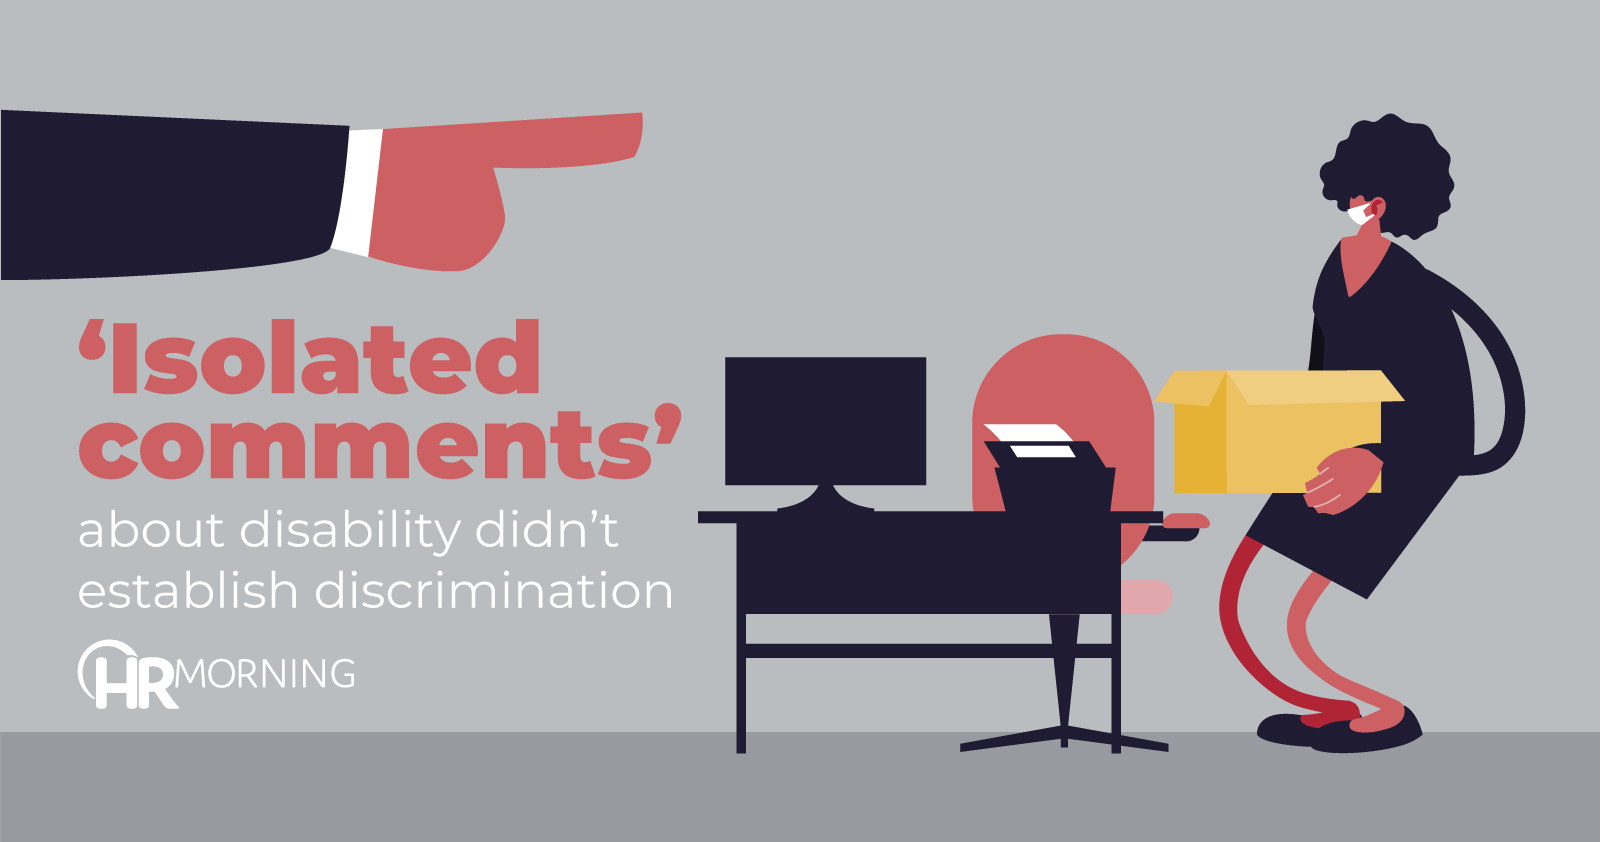 Isolated comments about disability didn't establish discrimination